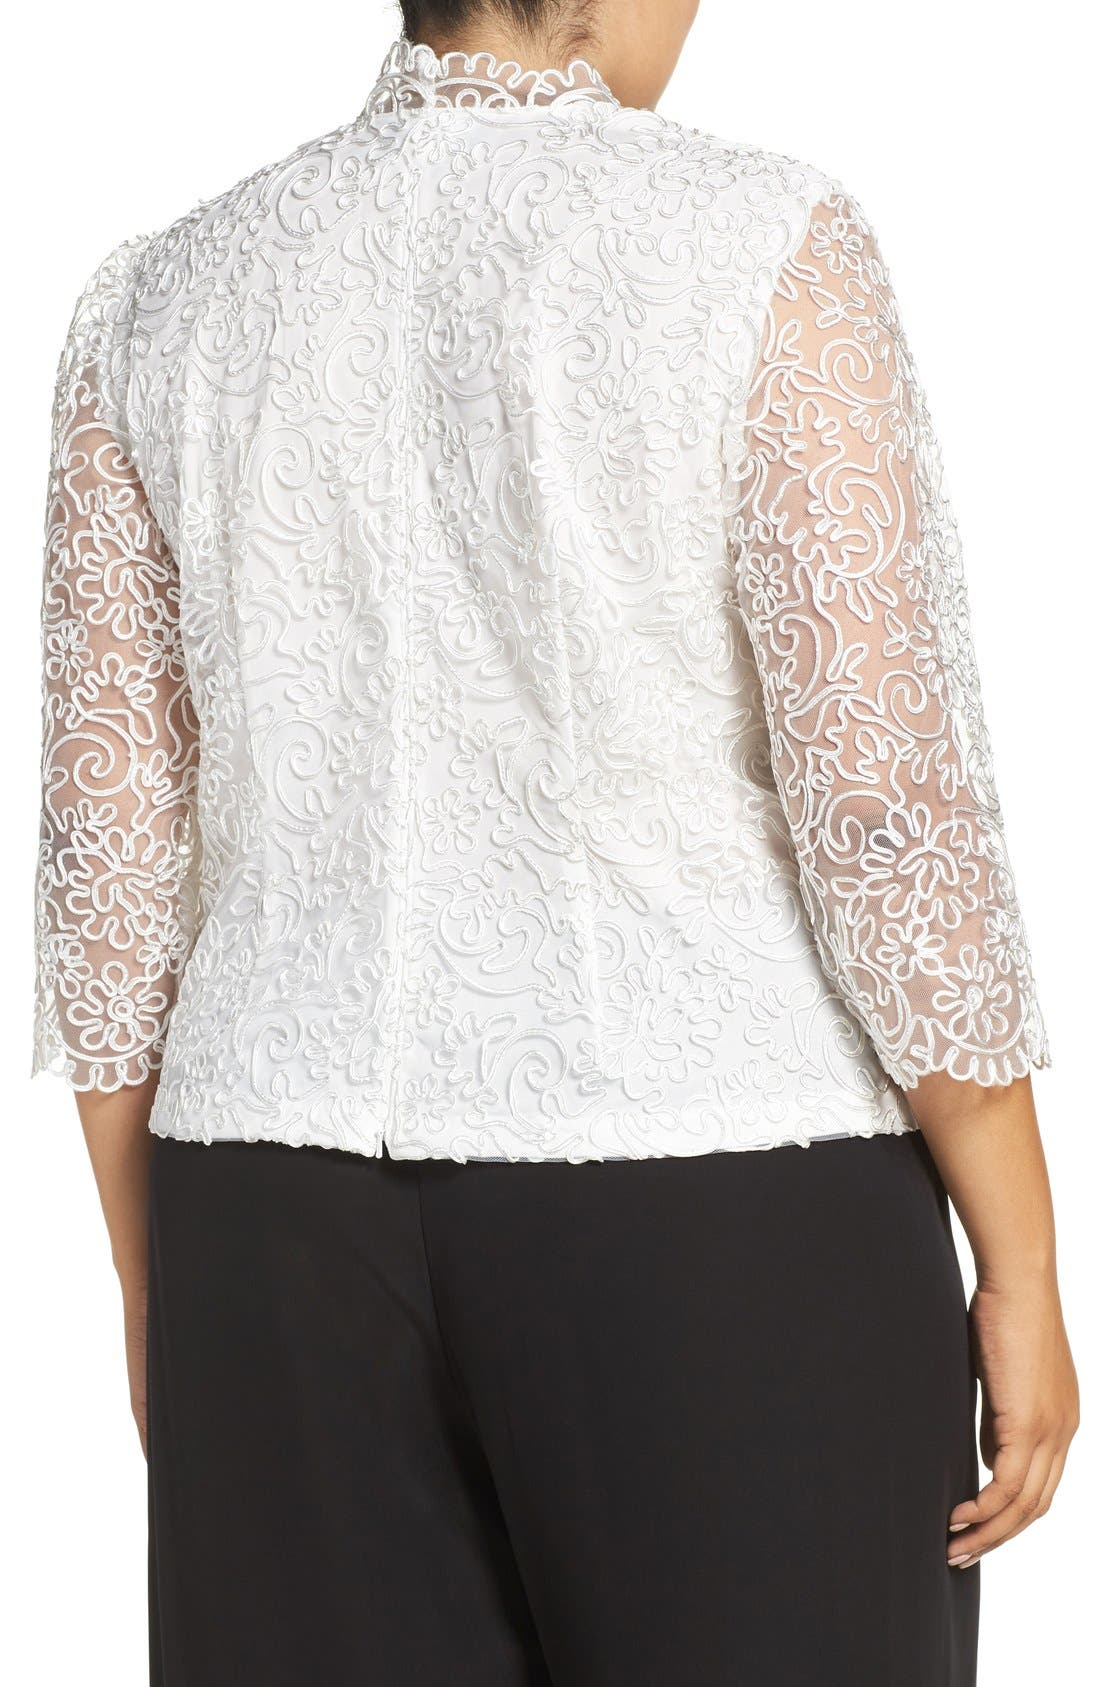 Embroidered Illusion Sleeve Blouse,                             Alternate thumbnail 8, color,